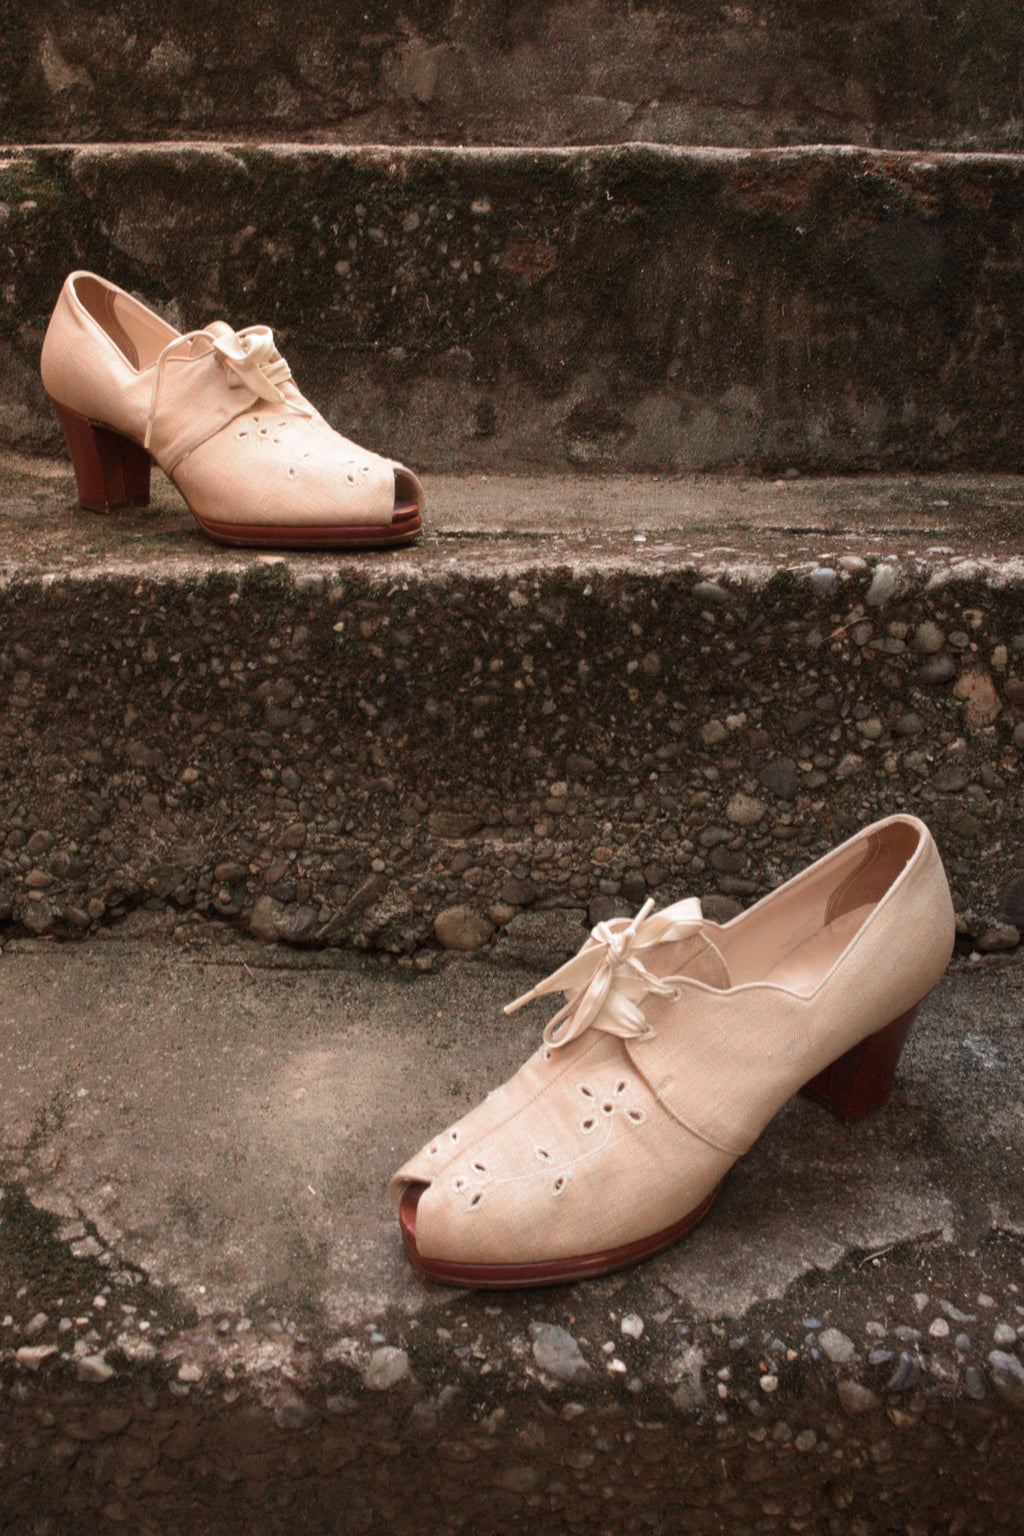 Gorgeous 1930s Natural Linen Oxfords with Eyelet Details and Blocky Heel, Shoe Size 7 US